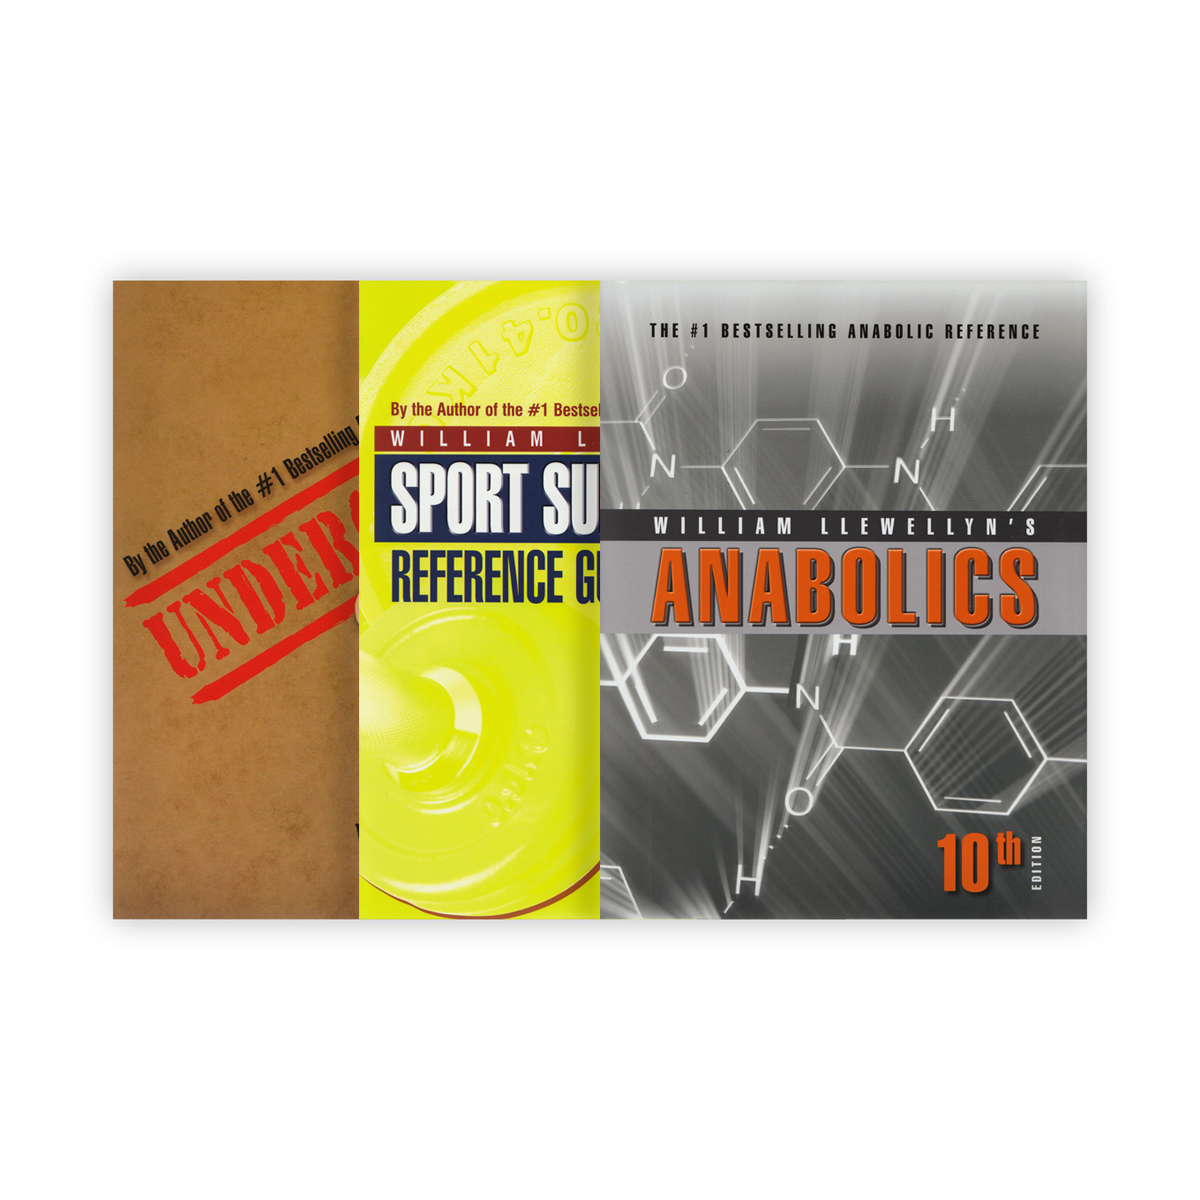 anabolics 10th edition pdf free download